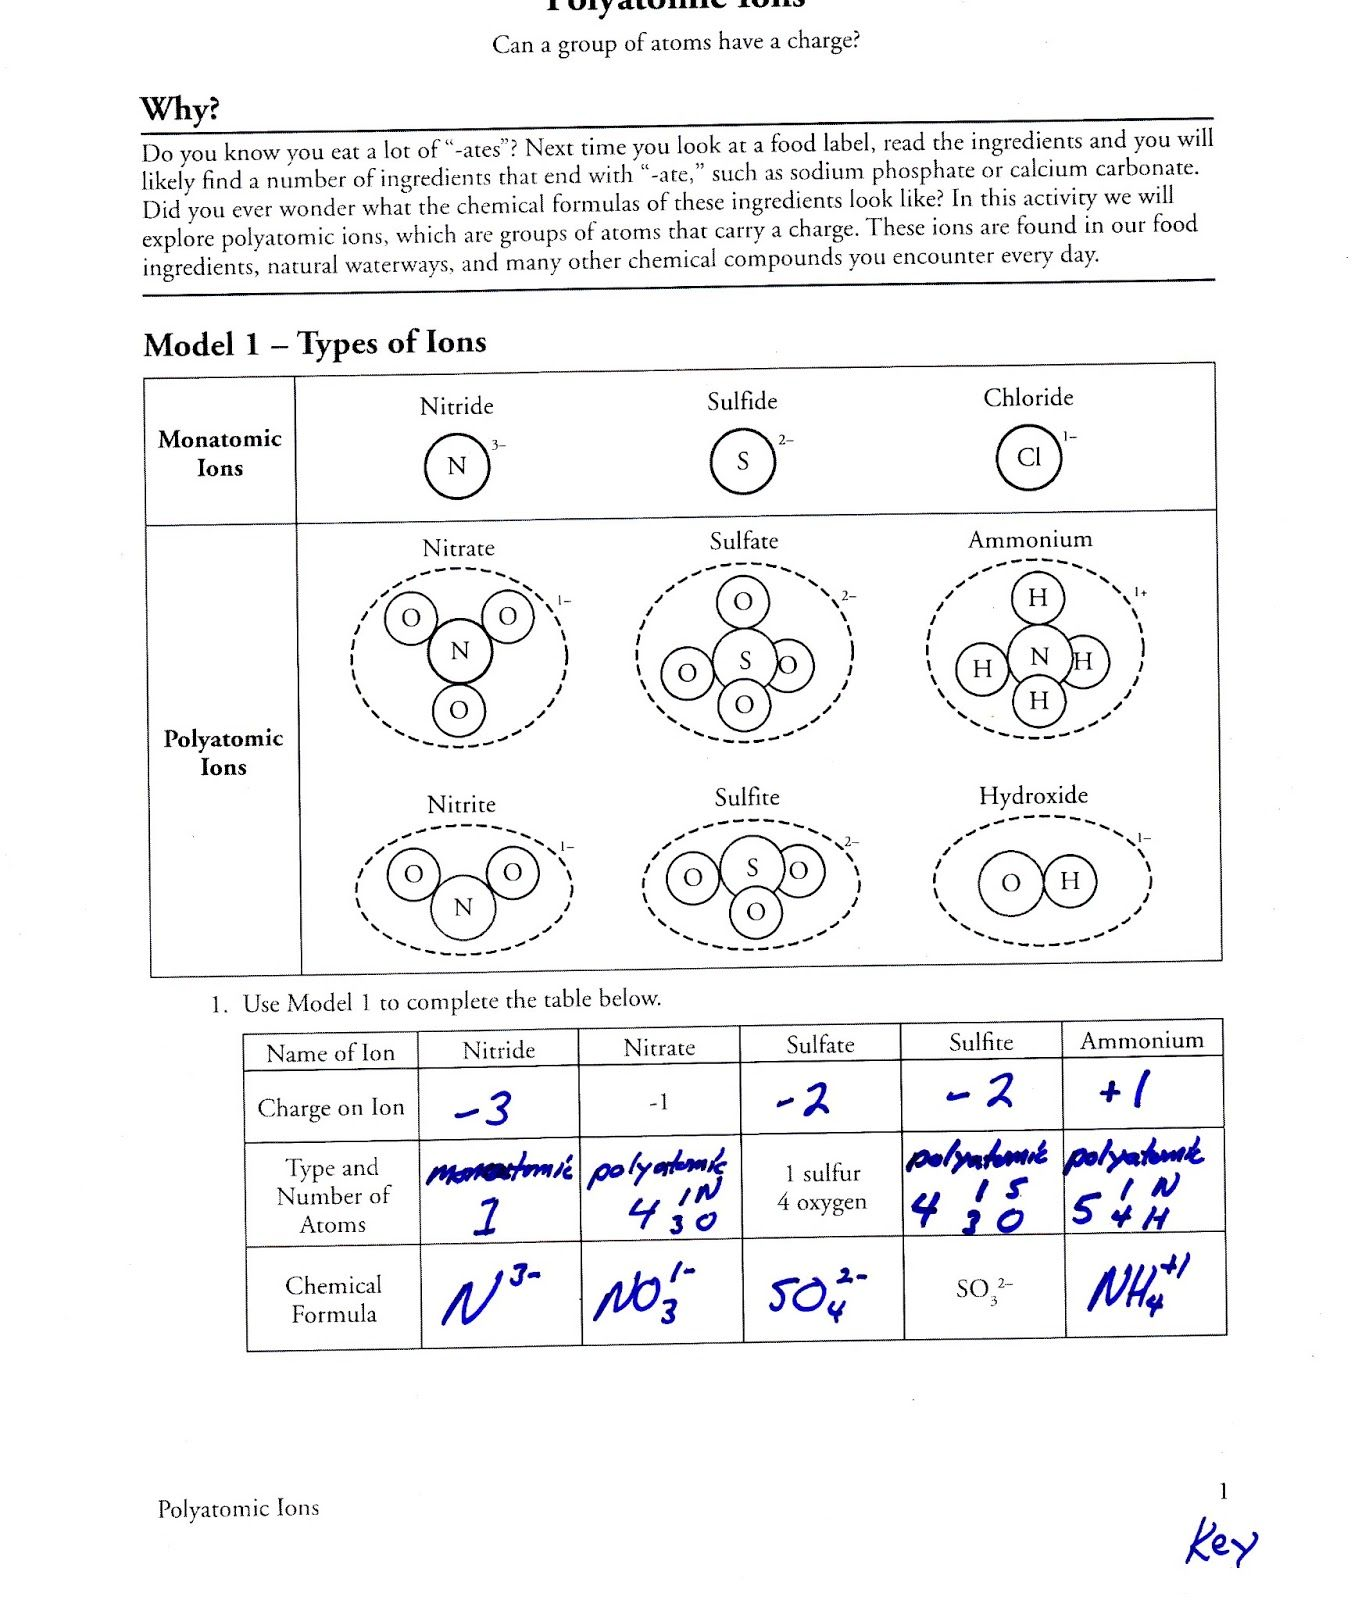 Chemistry Counting Atoms In Compounds Worksheet Answers